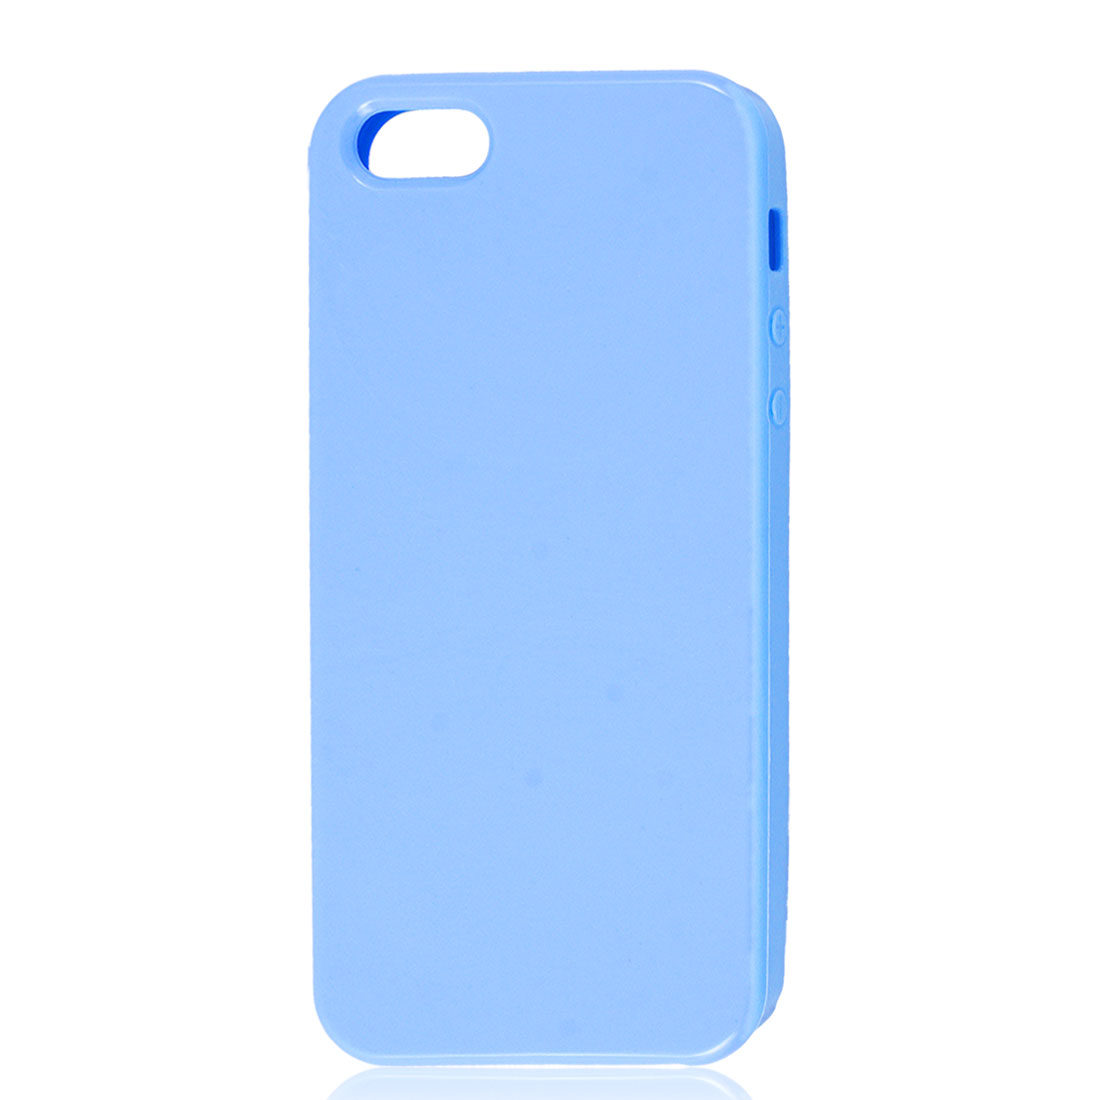 Light Blue Soft Plastic TPU Protective Case Cover Skin for Apple iPhone 5 5G